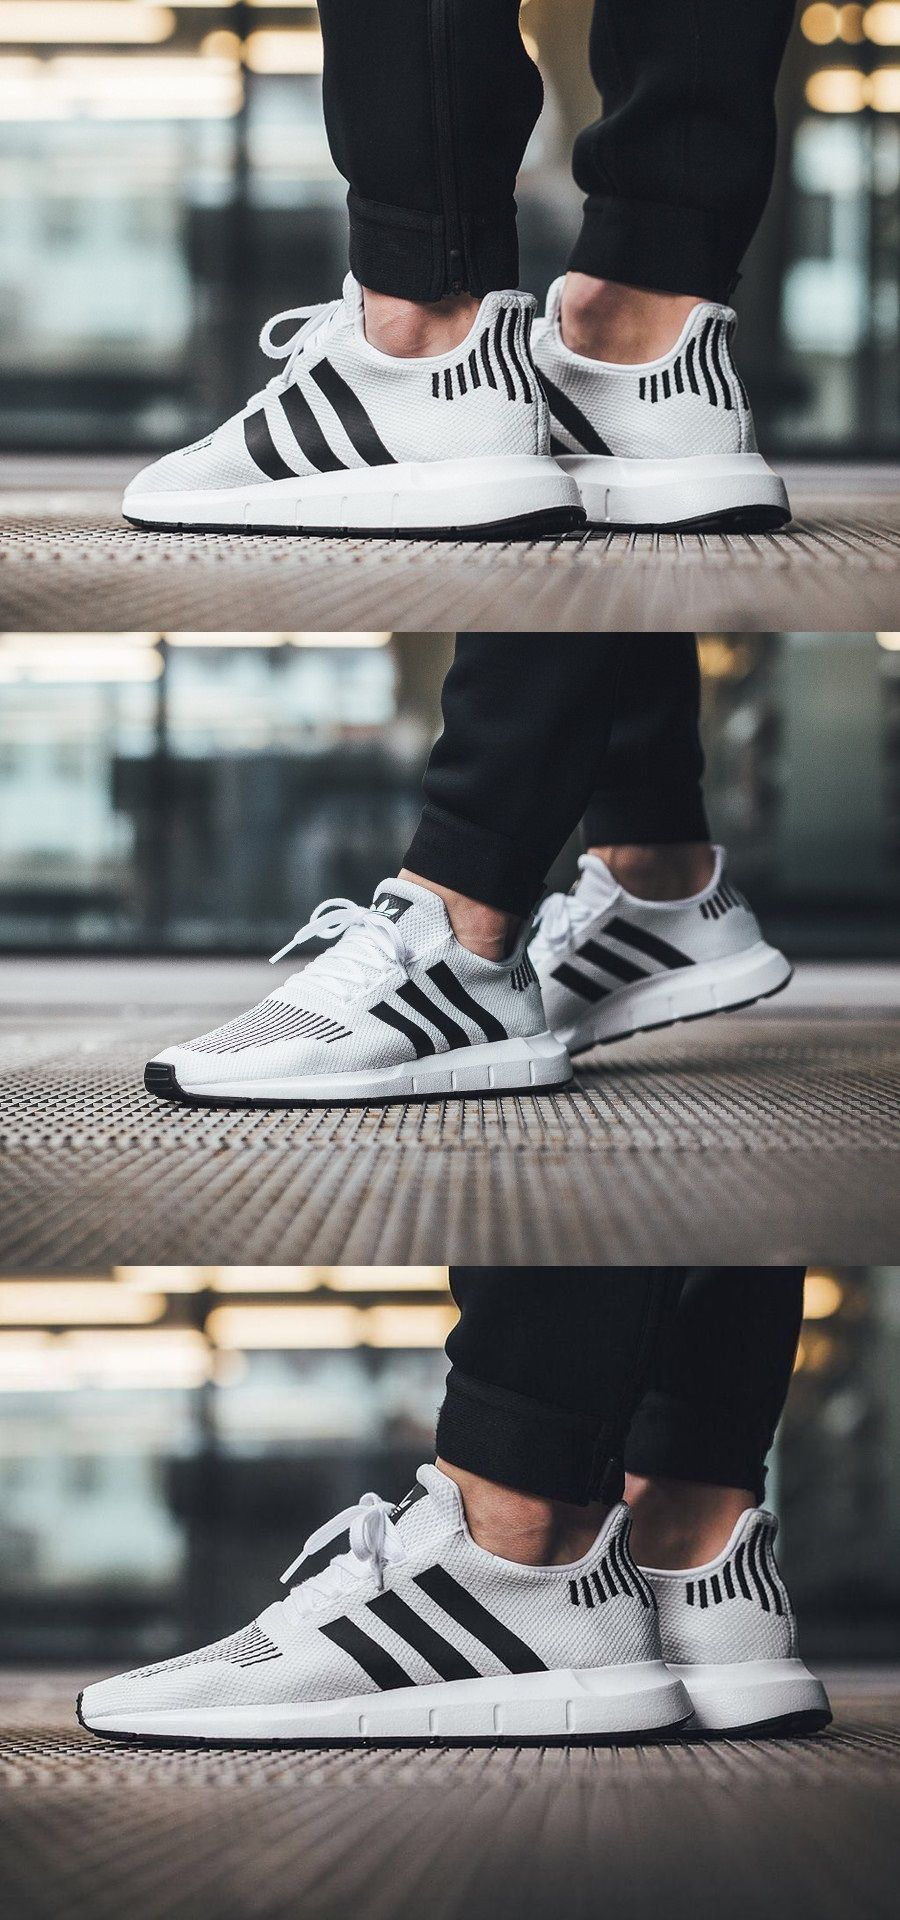 Adidas #Swift #Run #White #Black | Calzado masculino, Estilo